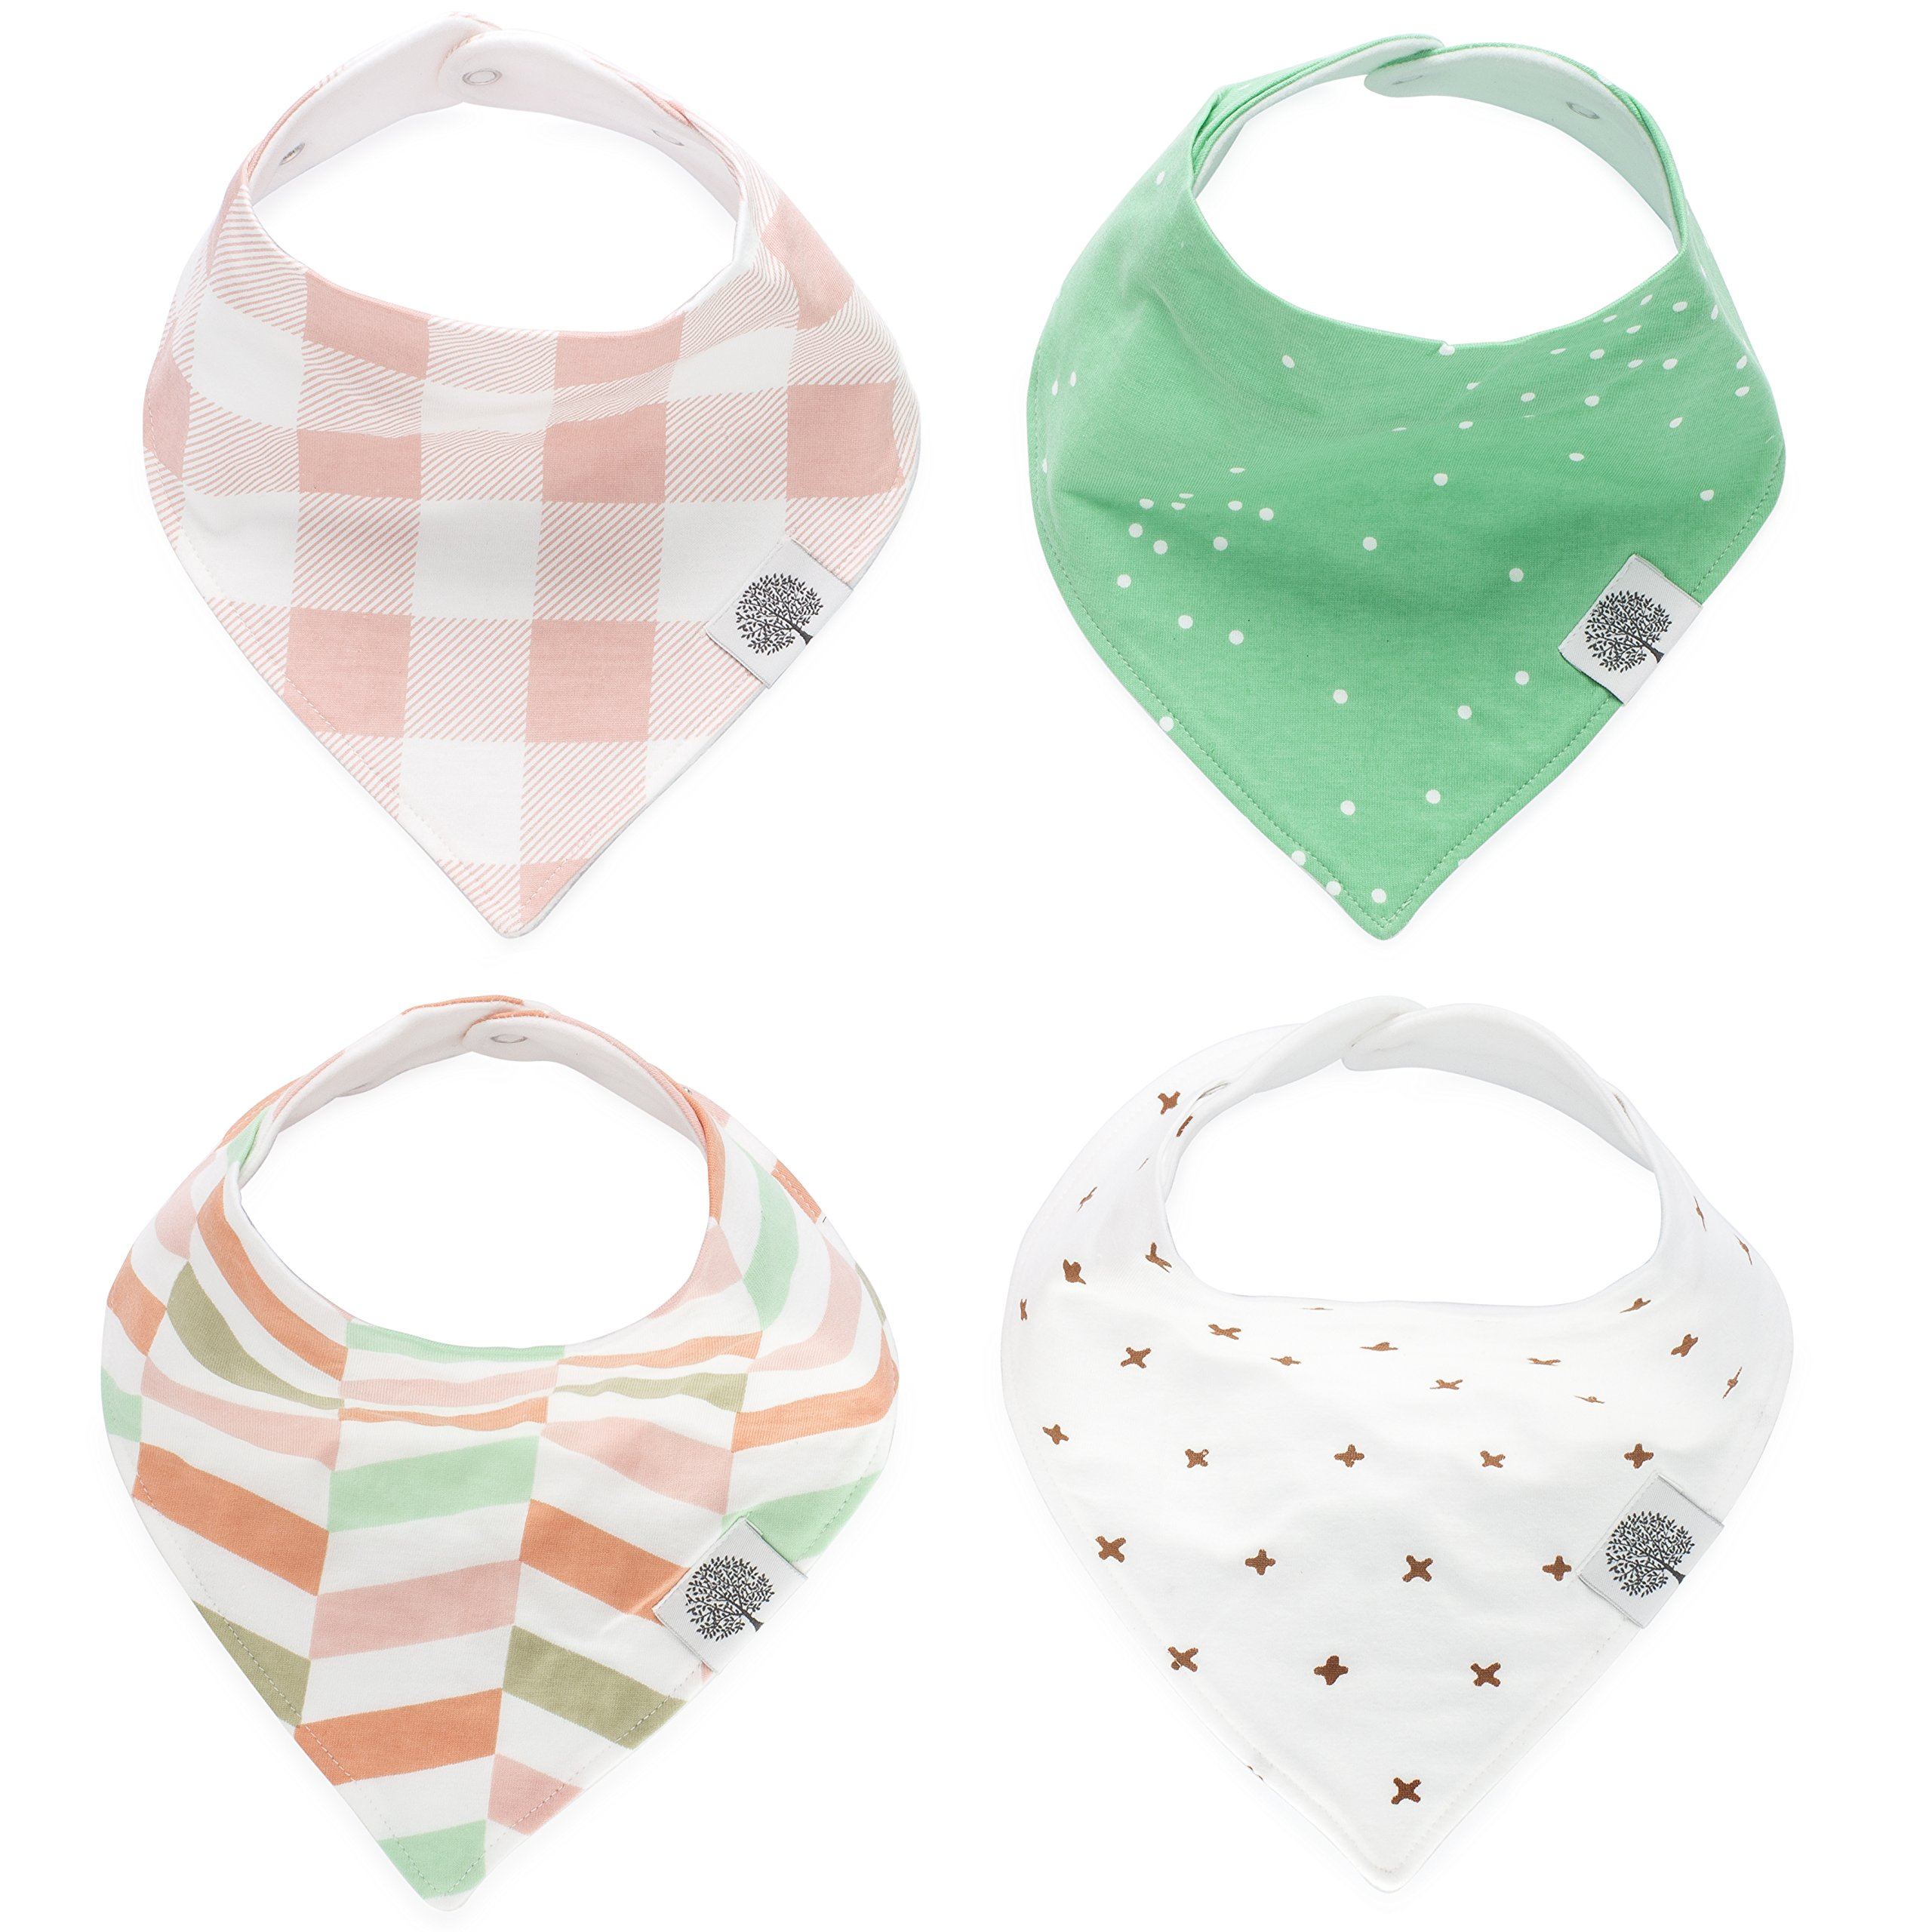 Bibs & Burp Cloths Mother & Kids Bandana Stylish Cotton Blend Baby Bib For Infants Baby Girls For 3 Months To 3 Years Self Feeding Care At Any Cost